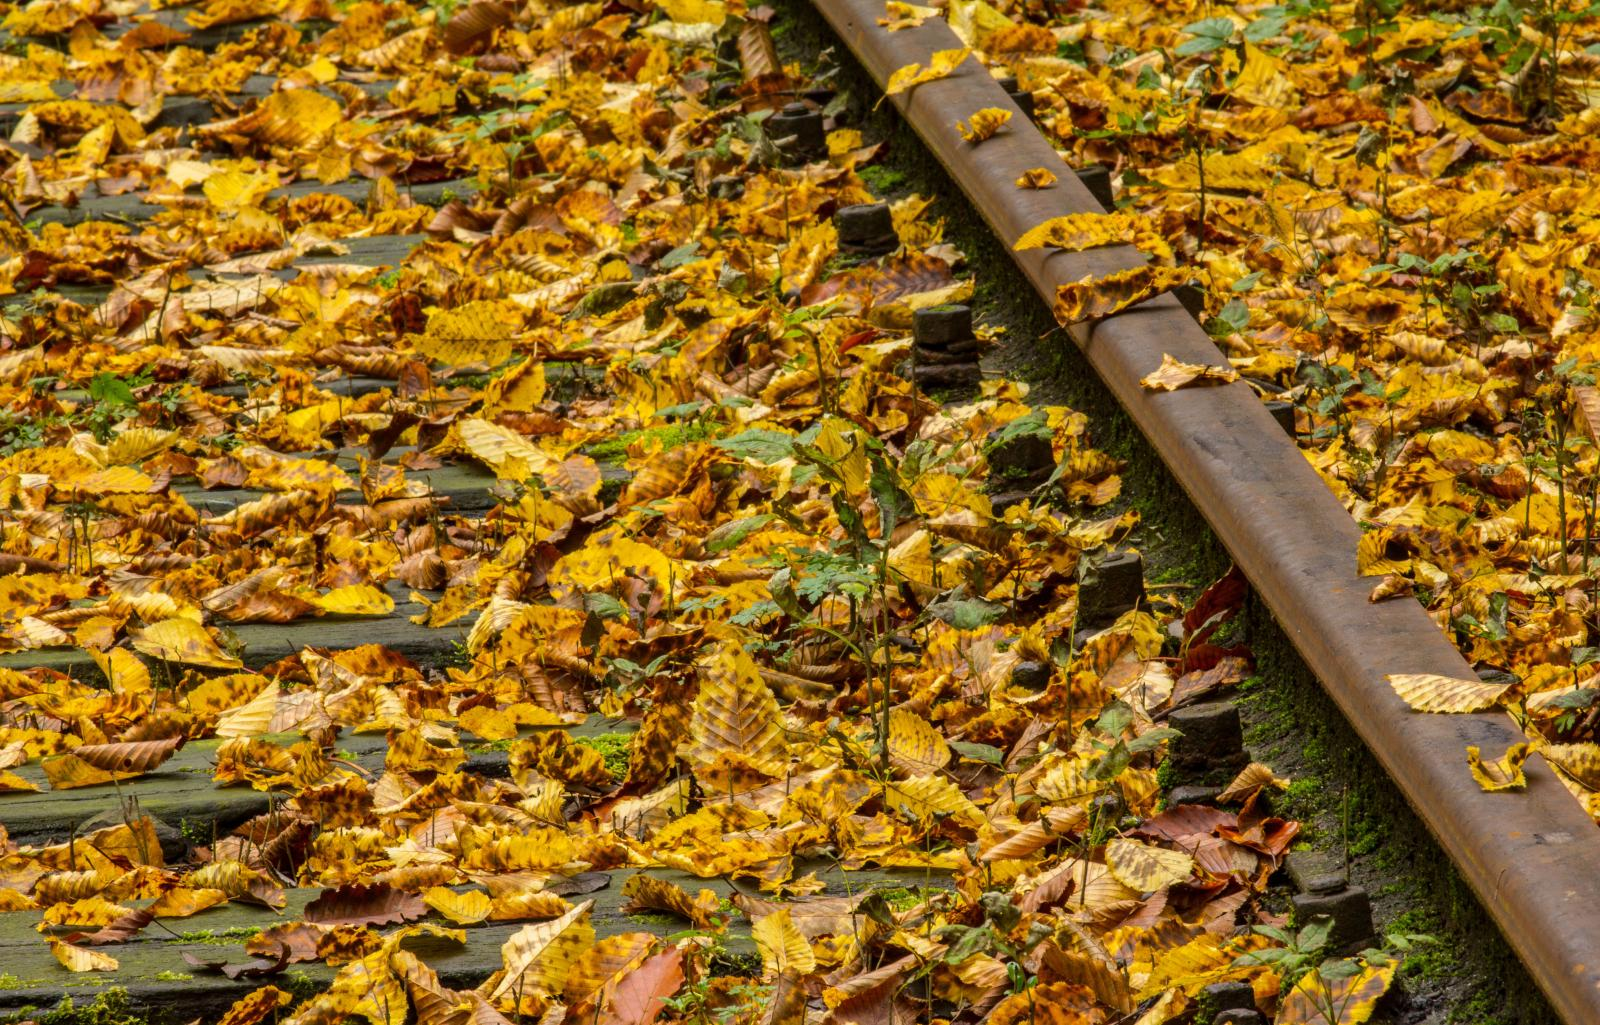 Train Delays: Leaves on the line, slippery rails and low adhesion